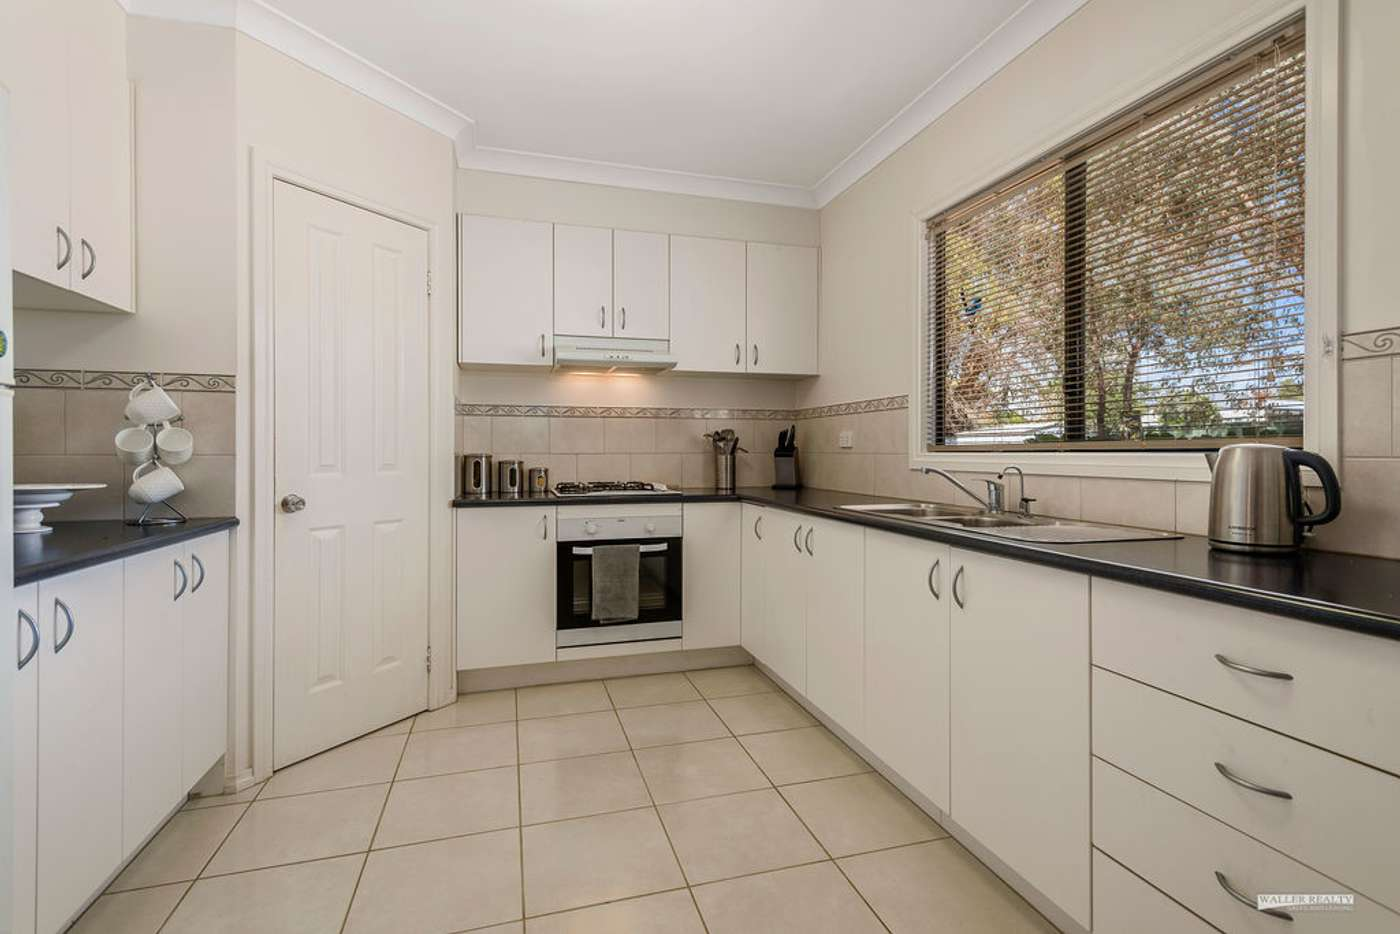 Sixth view of Homely house listing, 27a Lowther Street, Maldon VIC 3463